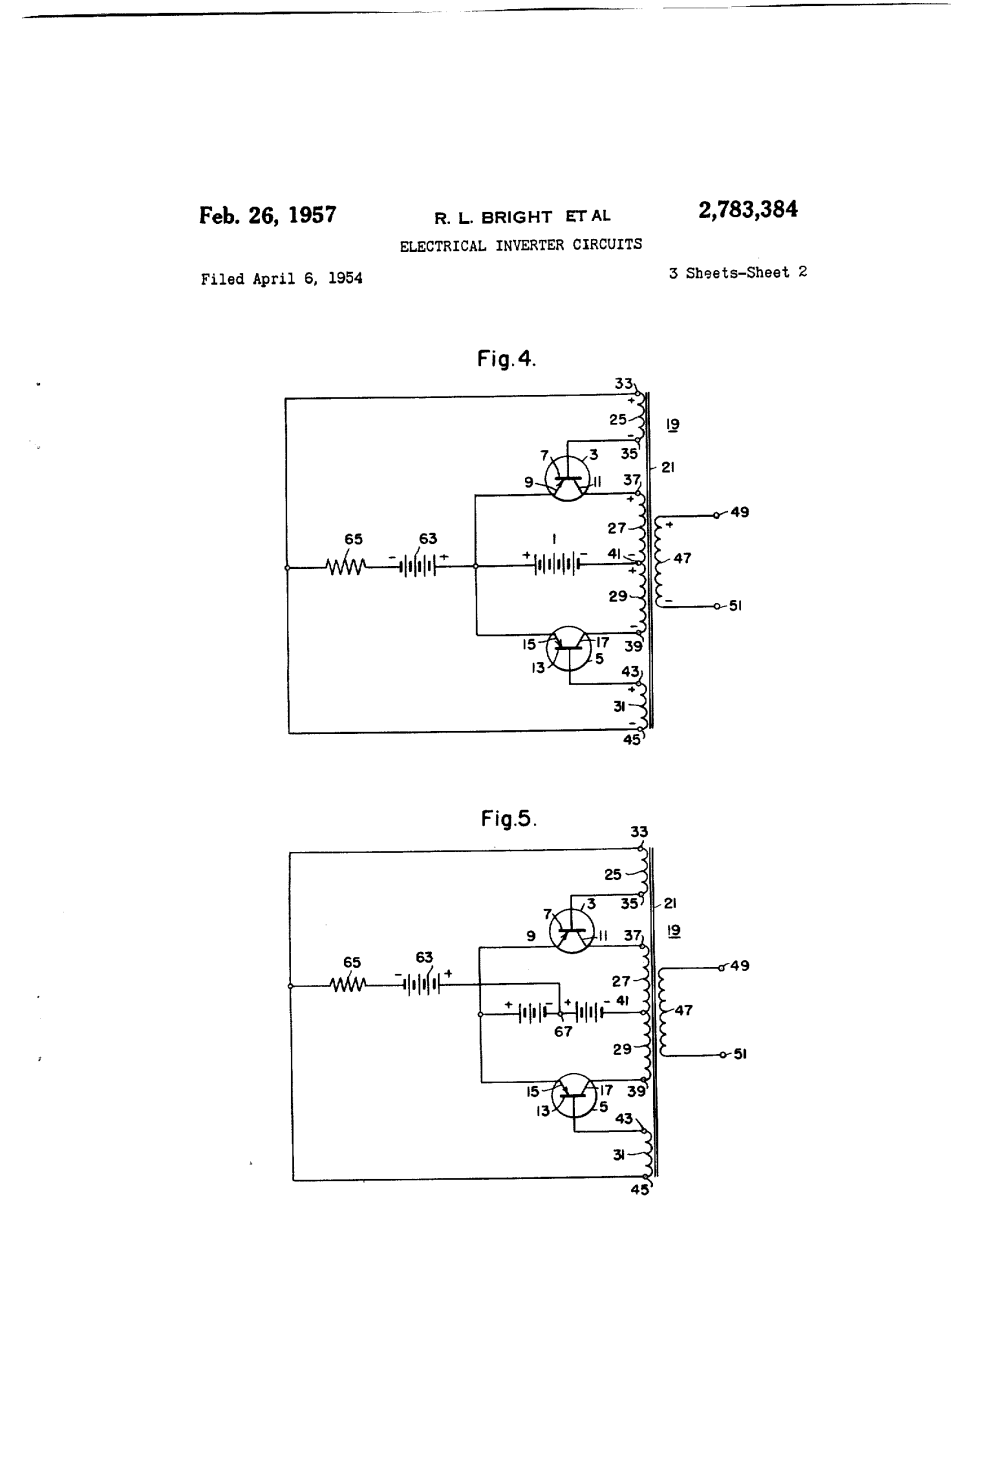 medium resolution of  2783384 electrical inverter circuits richard l bright george h royer westinghouse electric